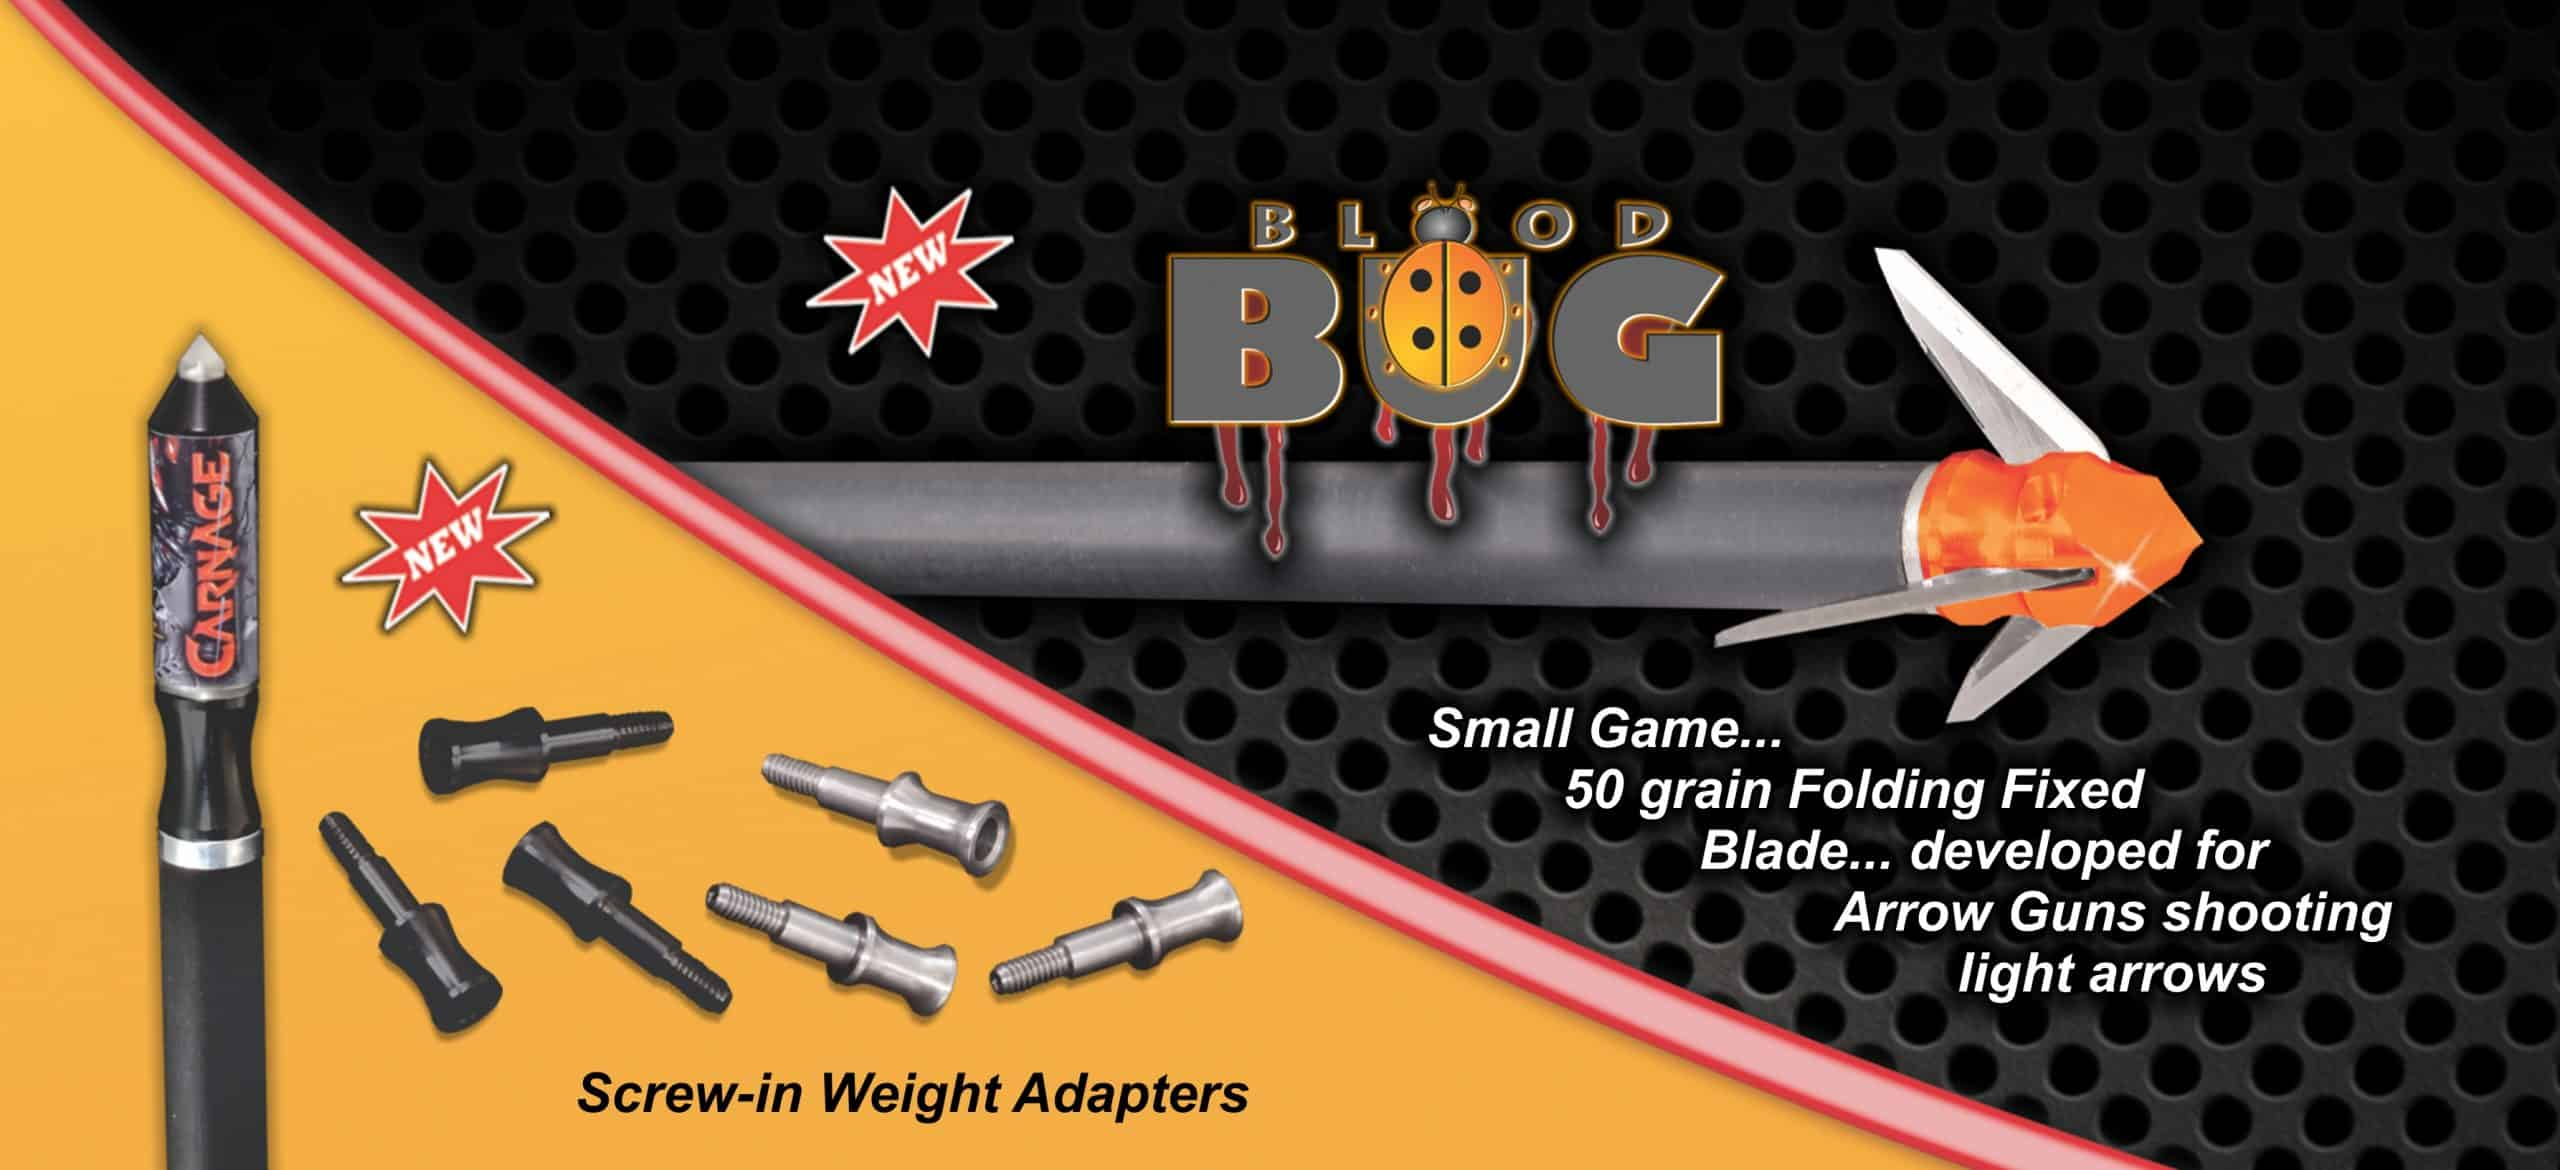 Innerloc Blood Bug Broadhead for air guns and air bows